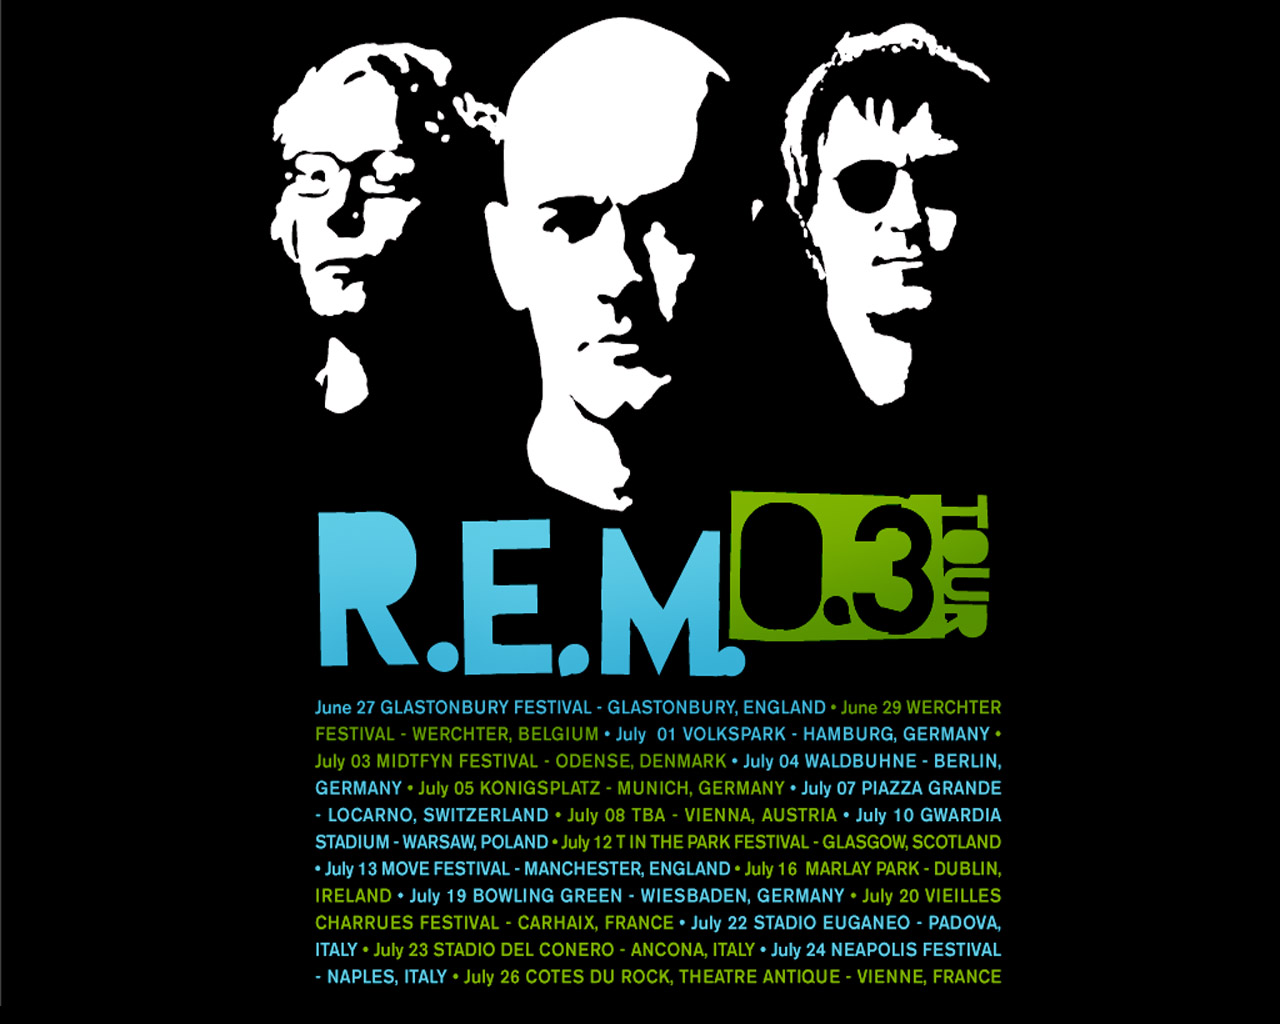 R.E.M. images REM HD wallpaper and background photos (722470)